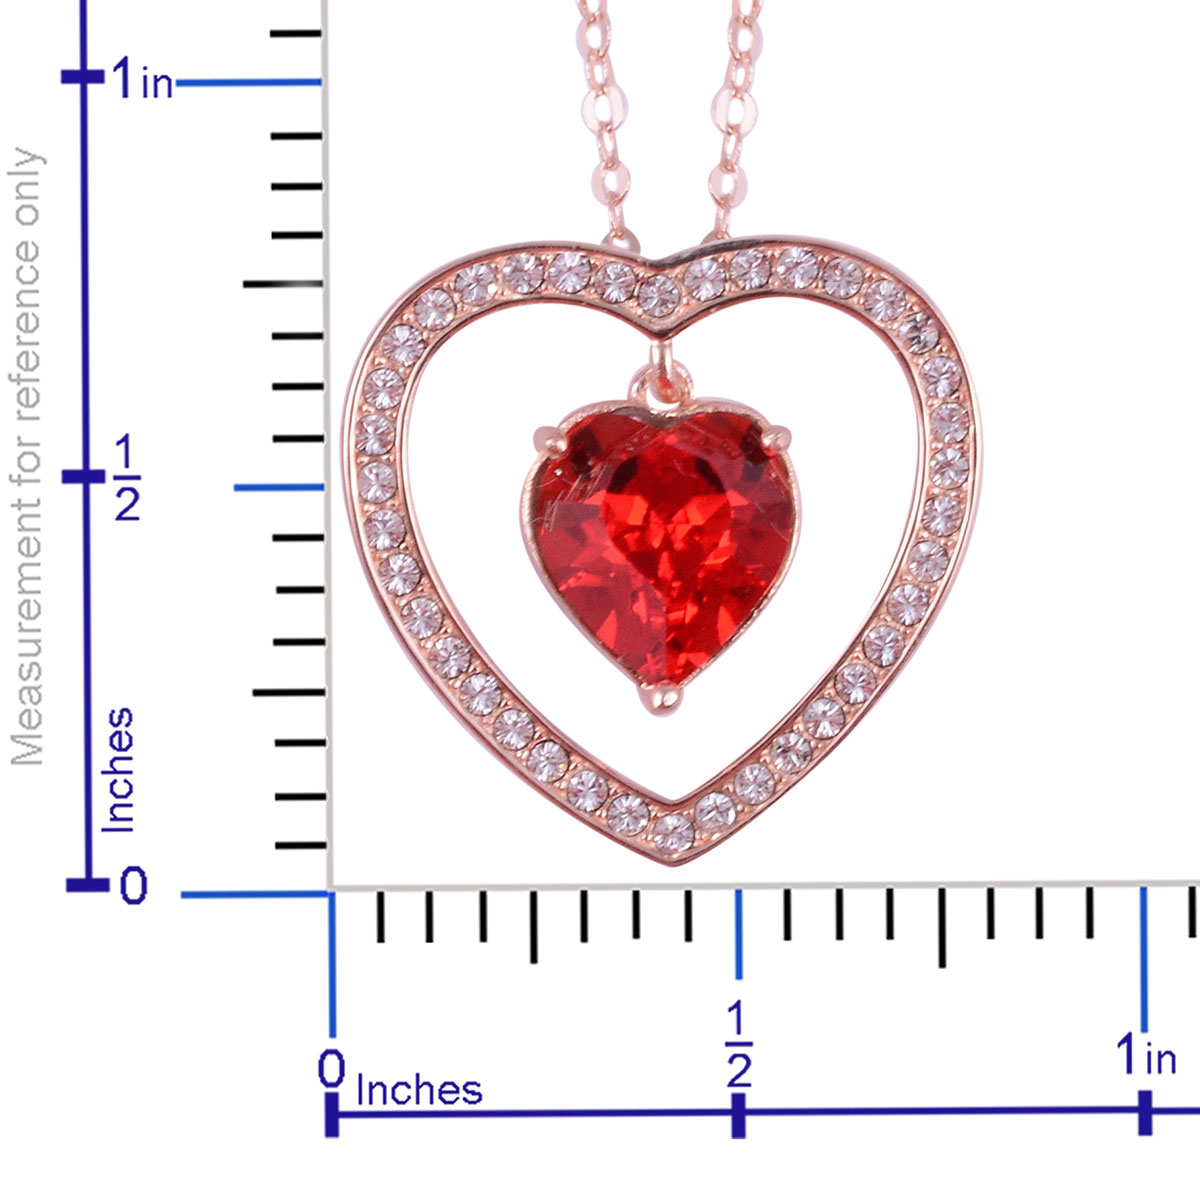 af5f4ae3c FROM THE HEART COLLECTION 14K RG Over Sterling Silver Heart Inner Drop  Pendant With Chain (18 in) Made with SWAROVSKI Red and White Crystal |  Pendants ...